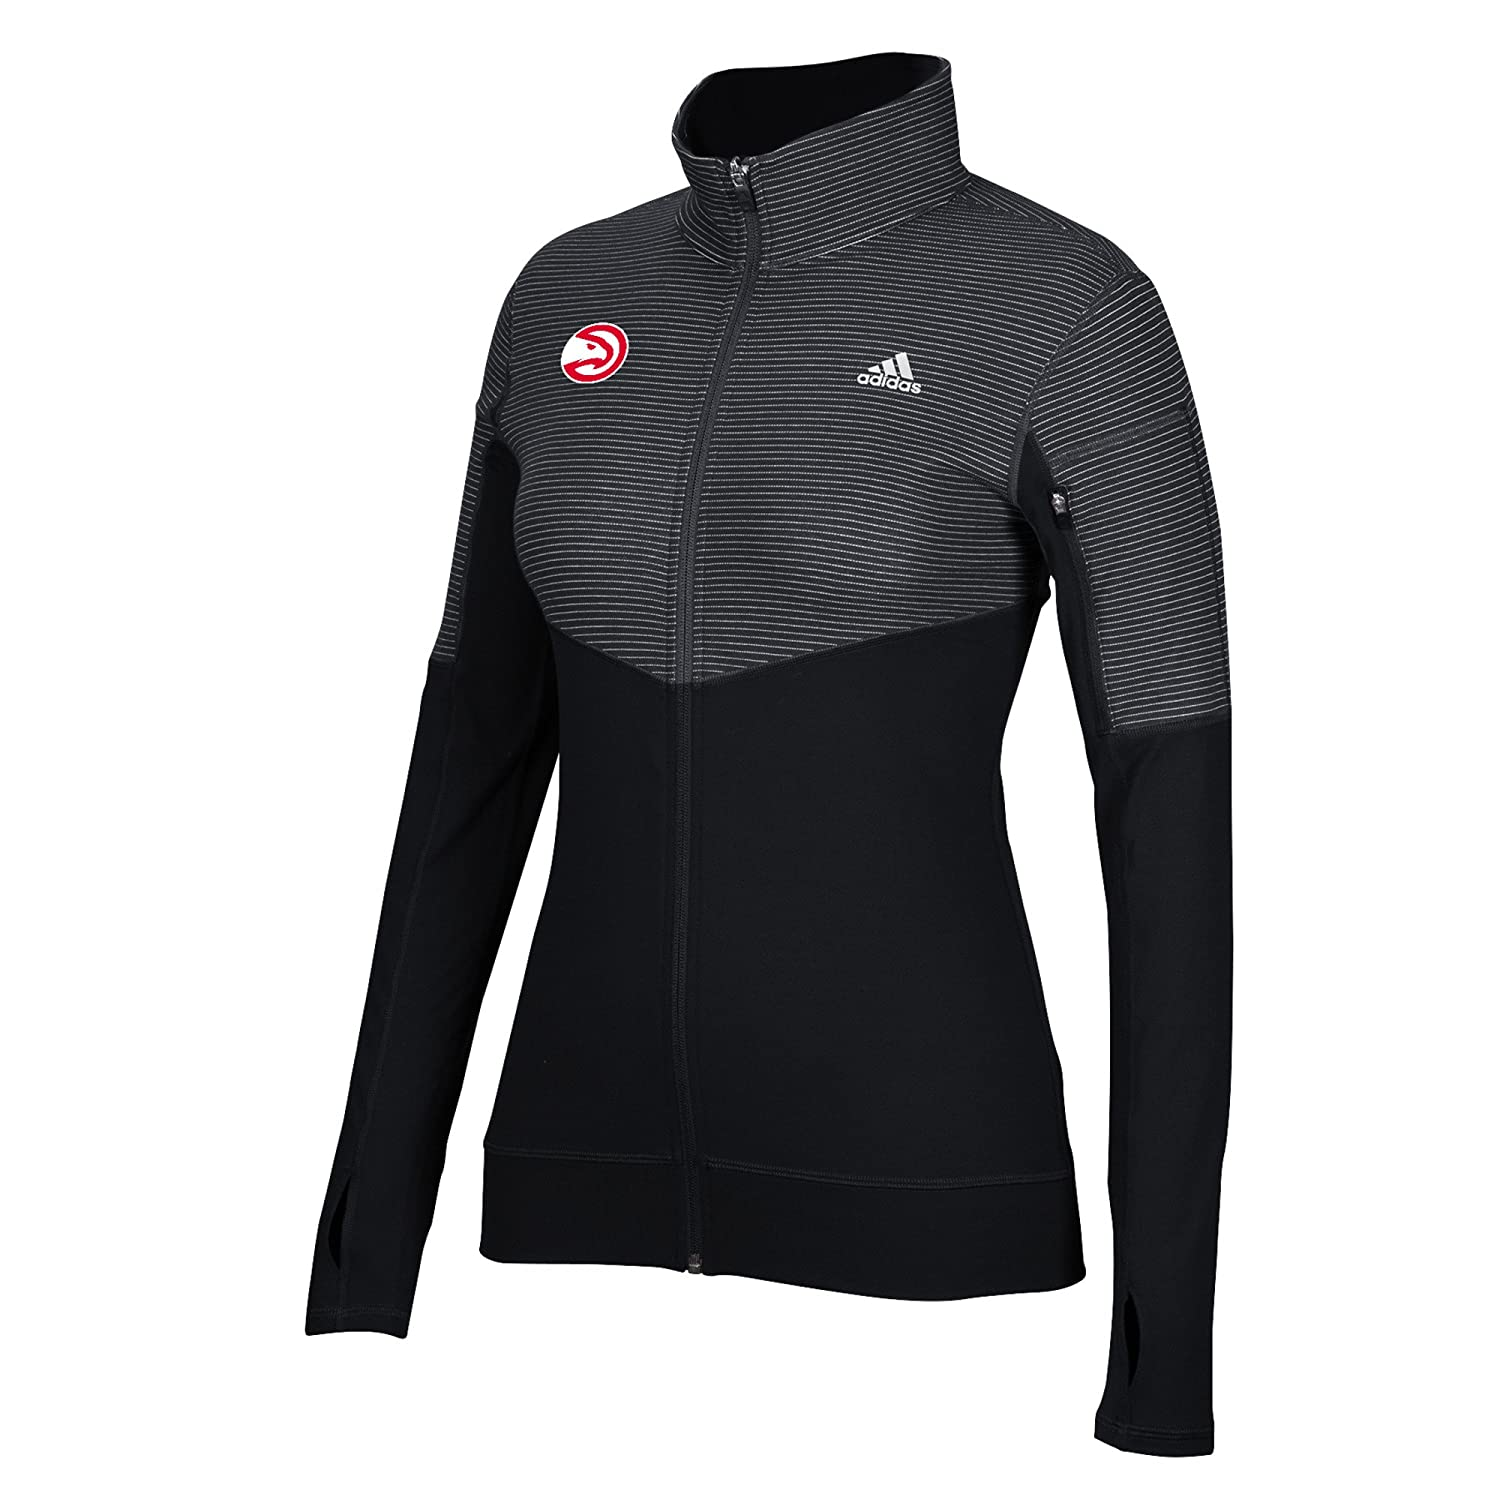 e6d0246f4 100% polyester slim fitted full zip. Climalite moisture-wicking fabric that  pulls sweat away from body to promote cooling and odor resistant